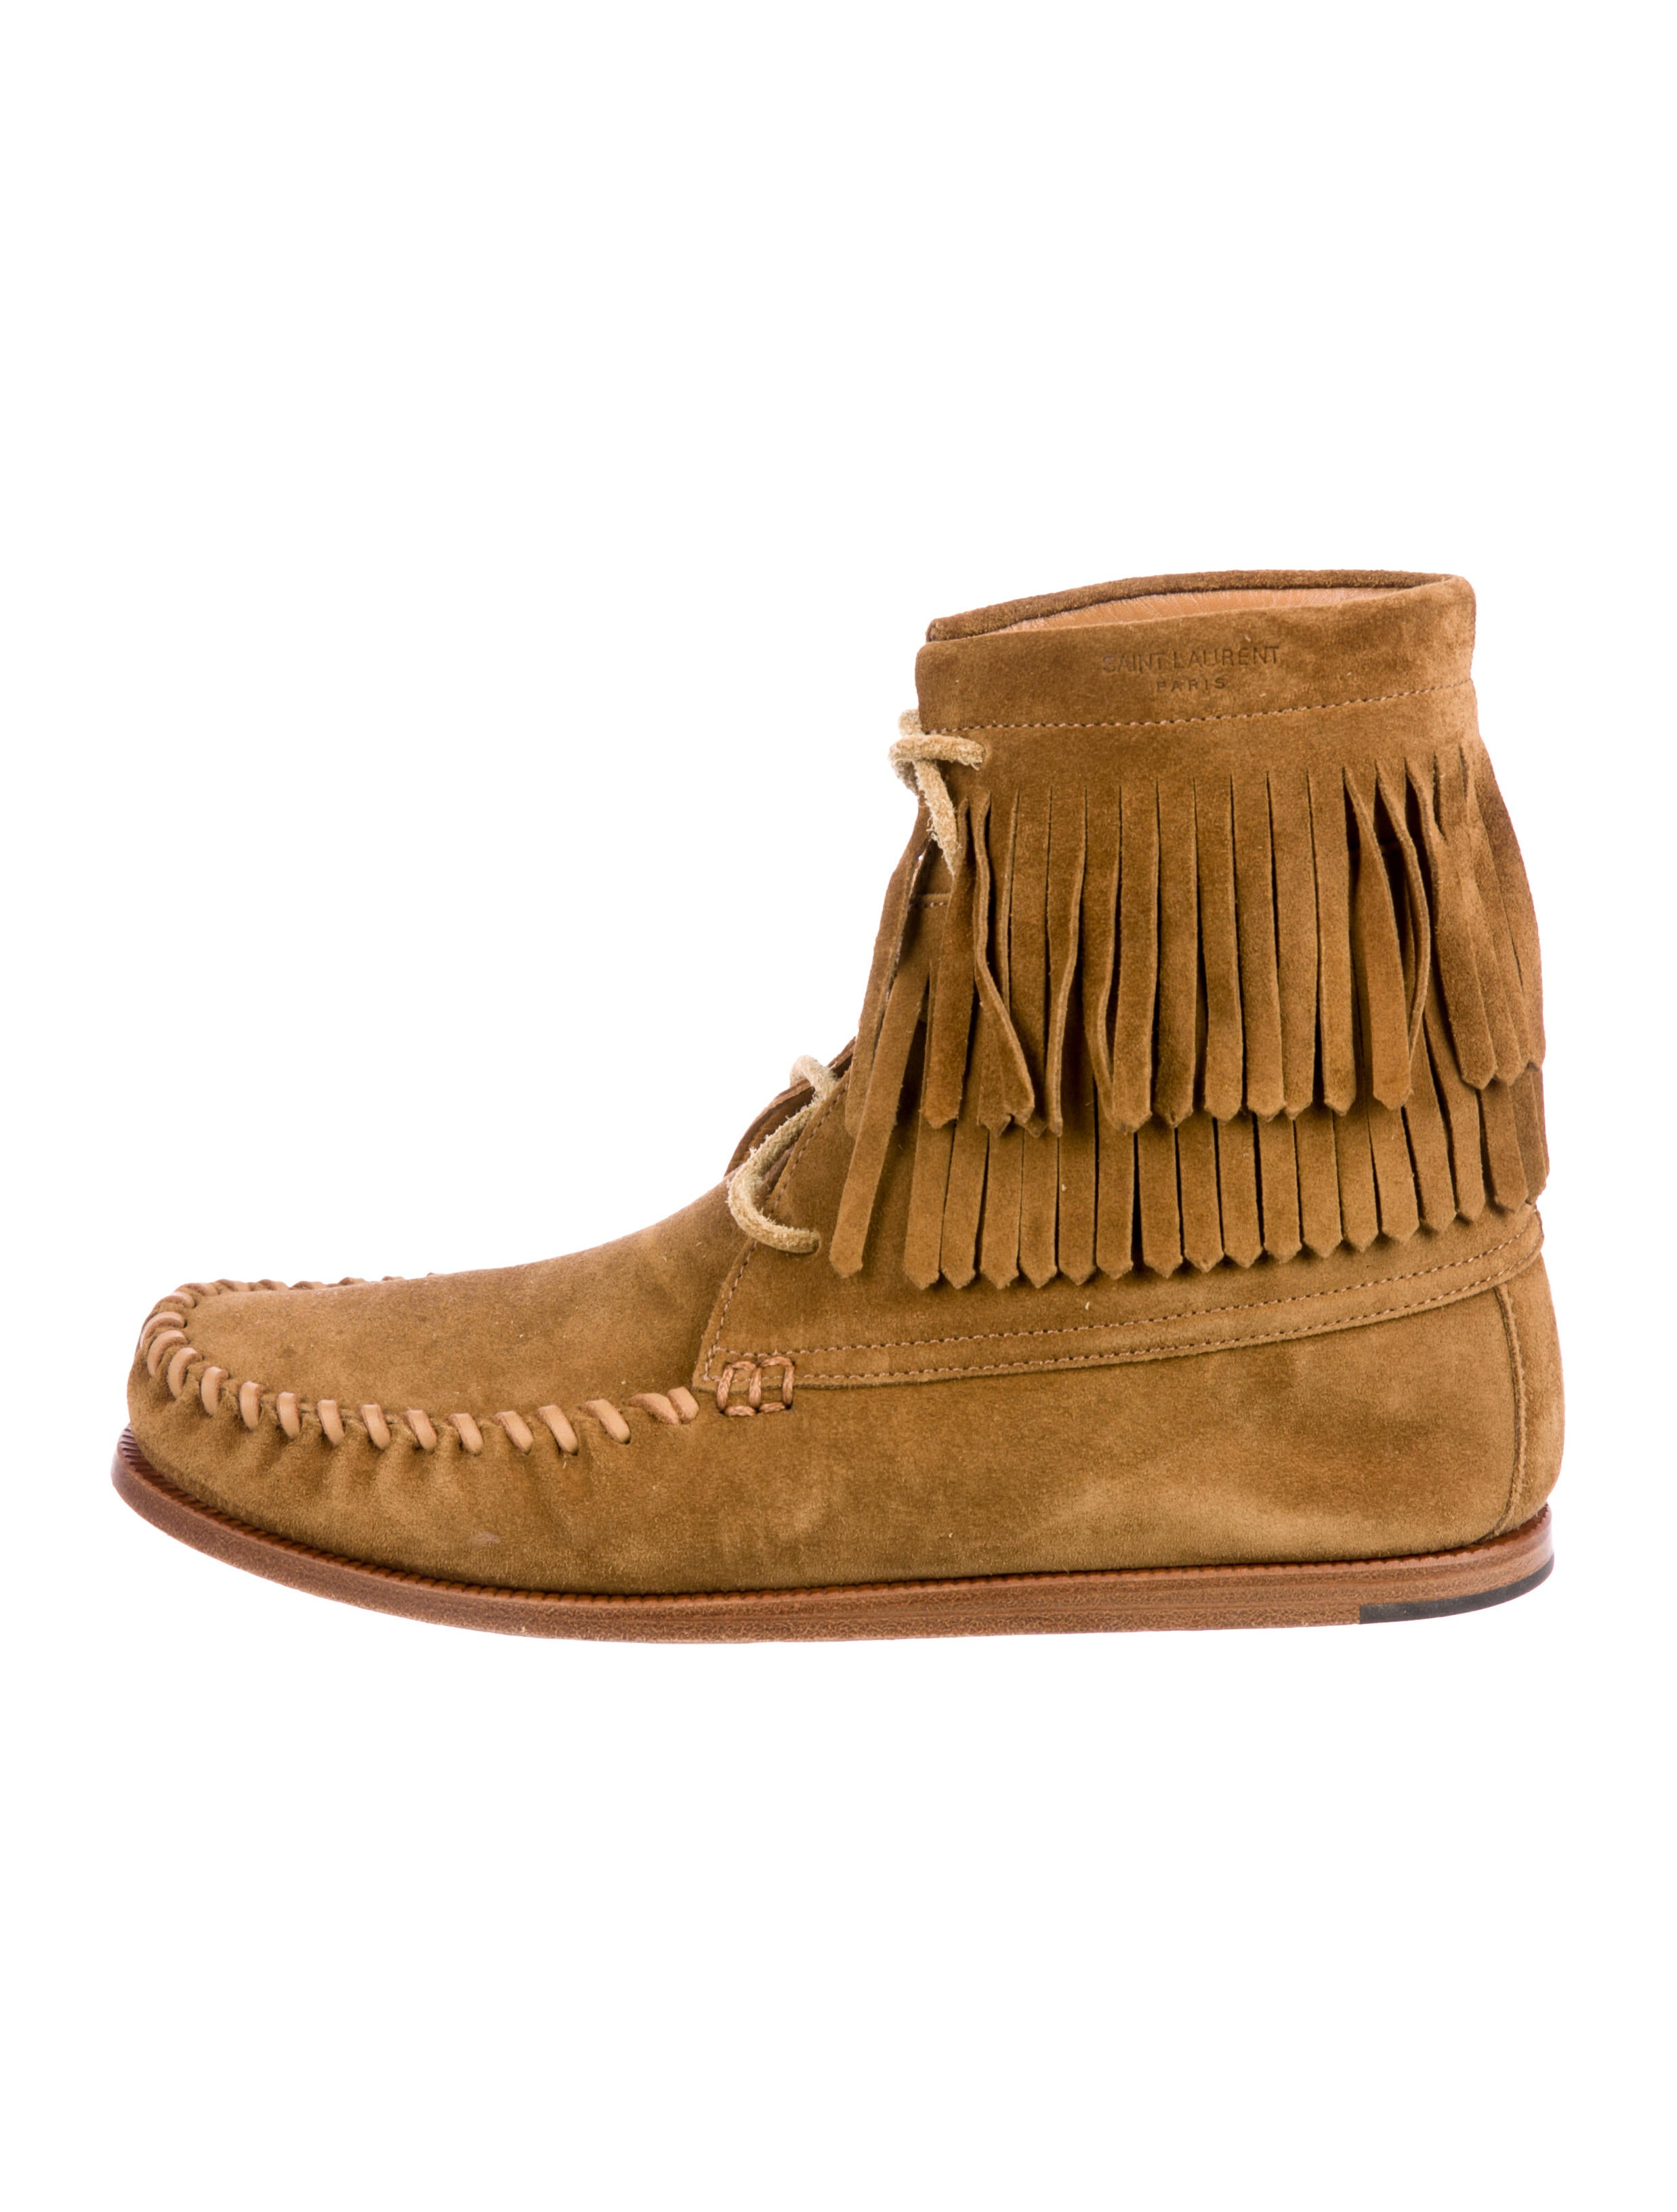 Saint Laurent Fringe-Trimmed Moccasin Boots sale sale online sale under $60 01FTm8Ehk